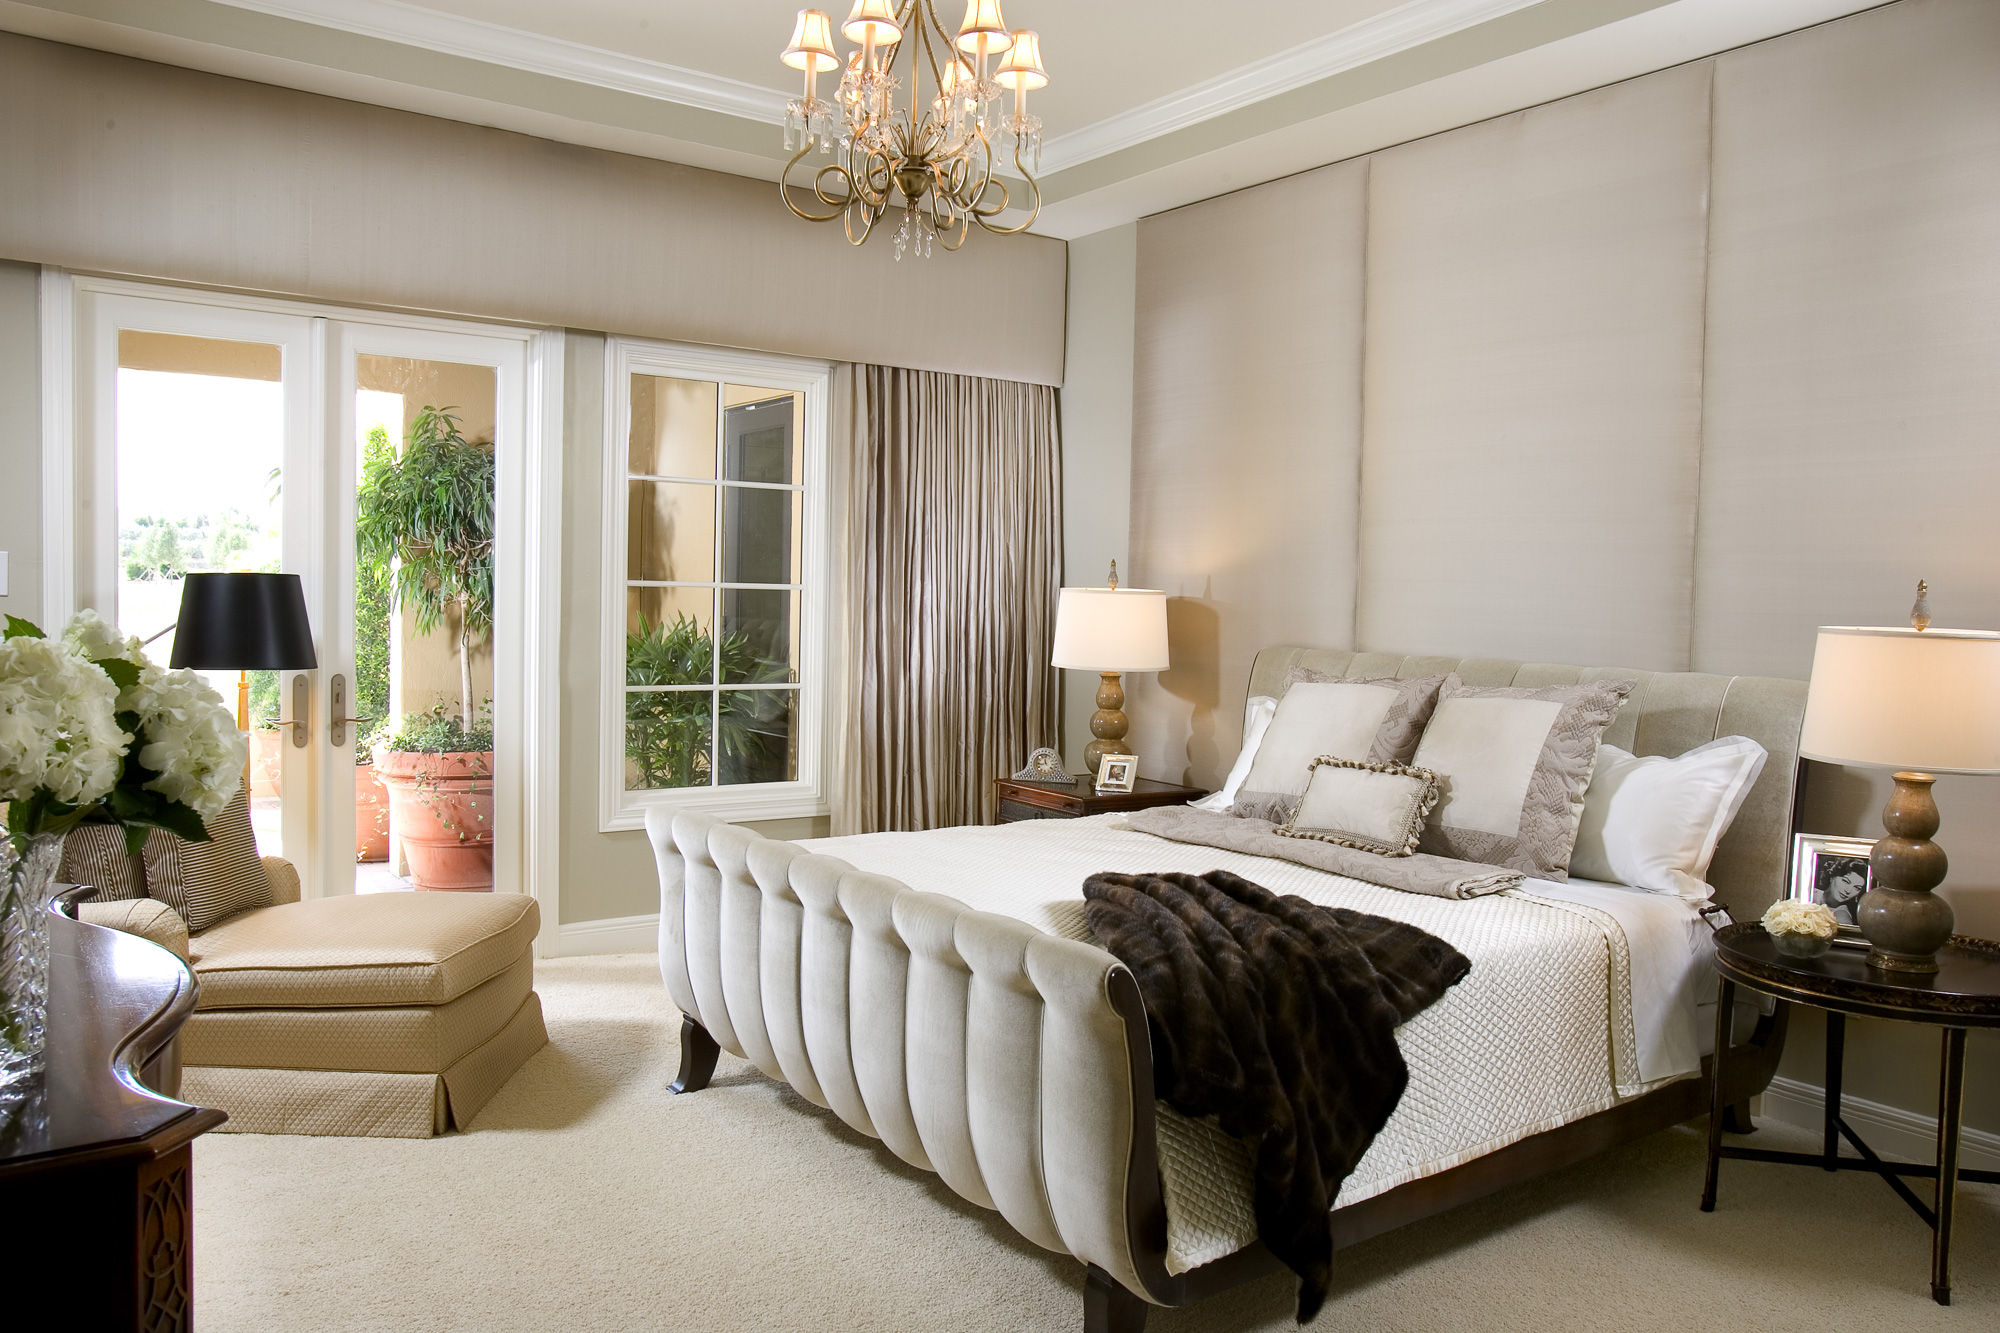 Interior design gallery malibu west interiors naples for Interior designs for master bedroom pictures